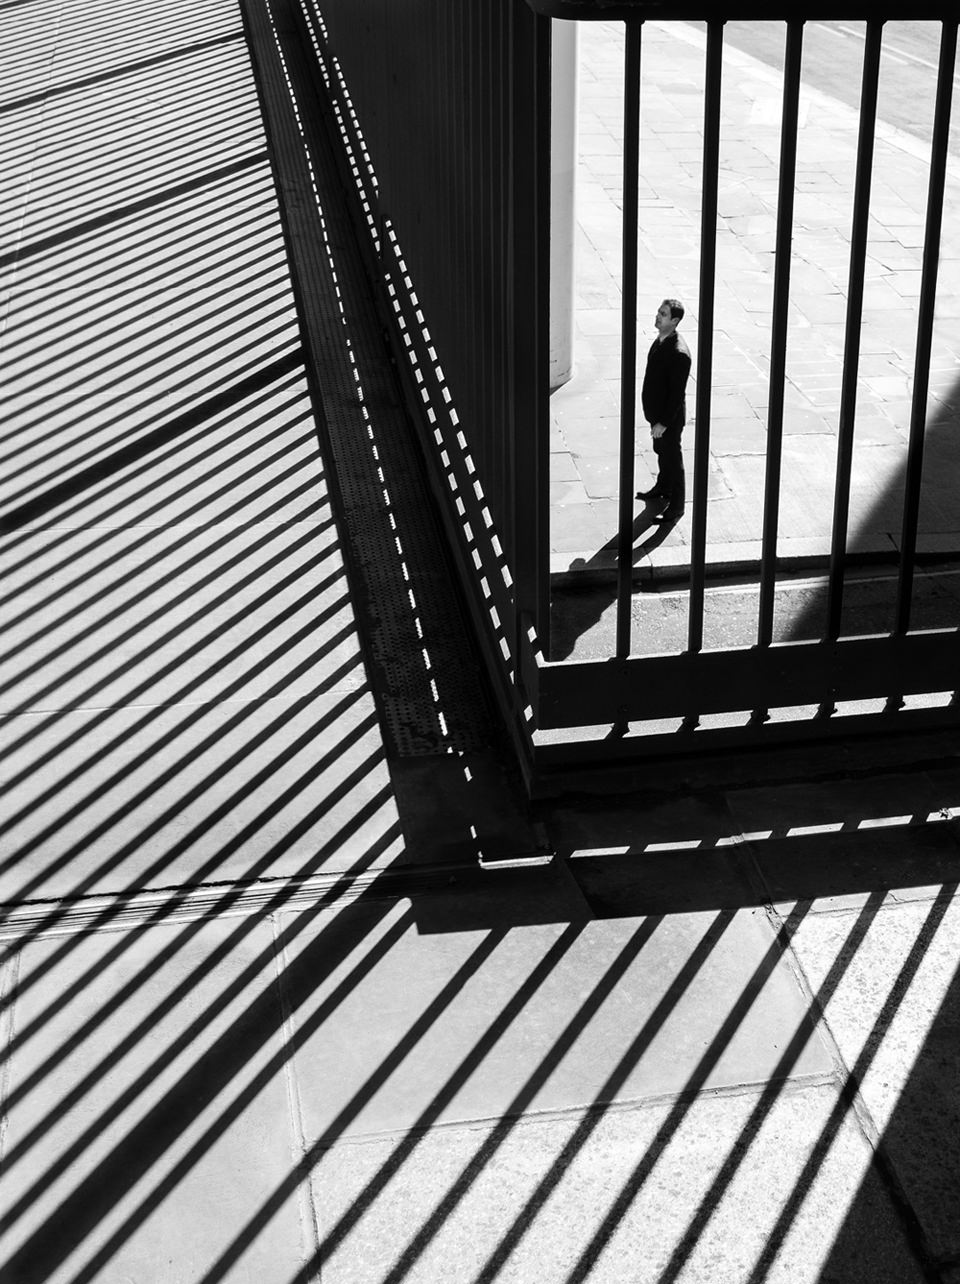 Metaphysical Moment © Rupert Vandervell